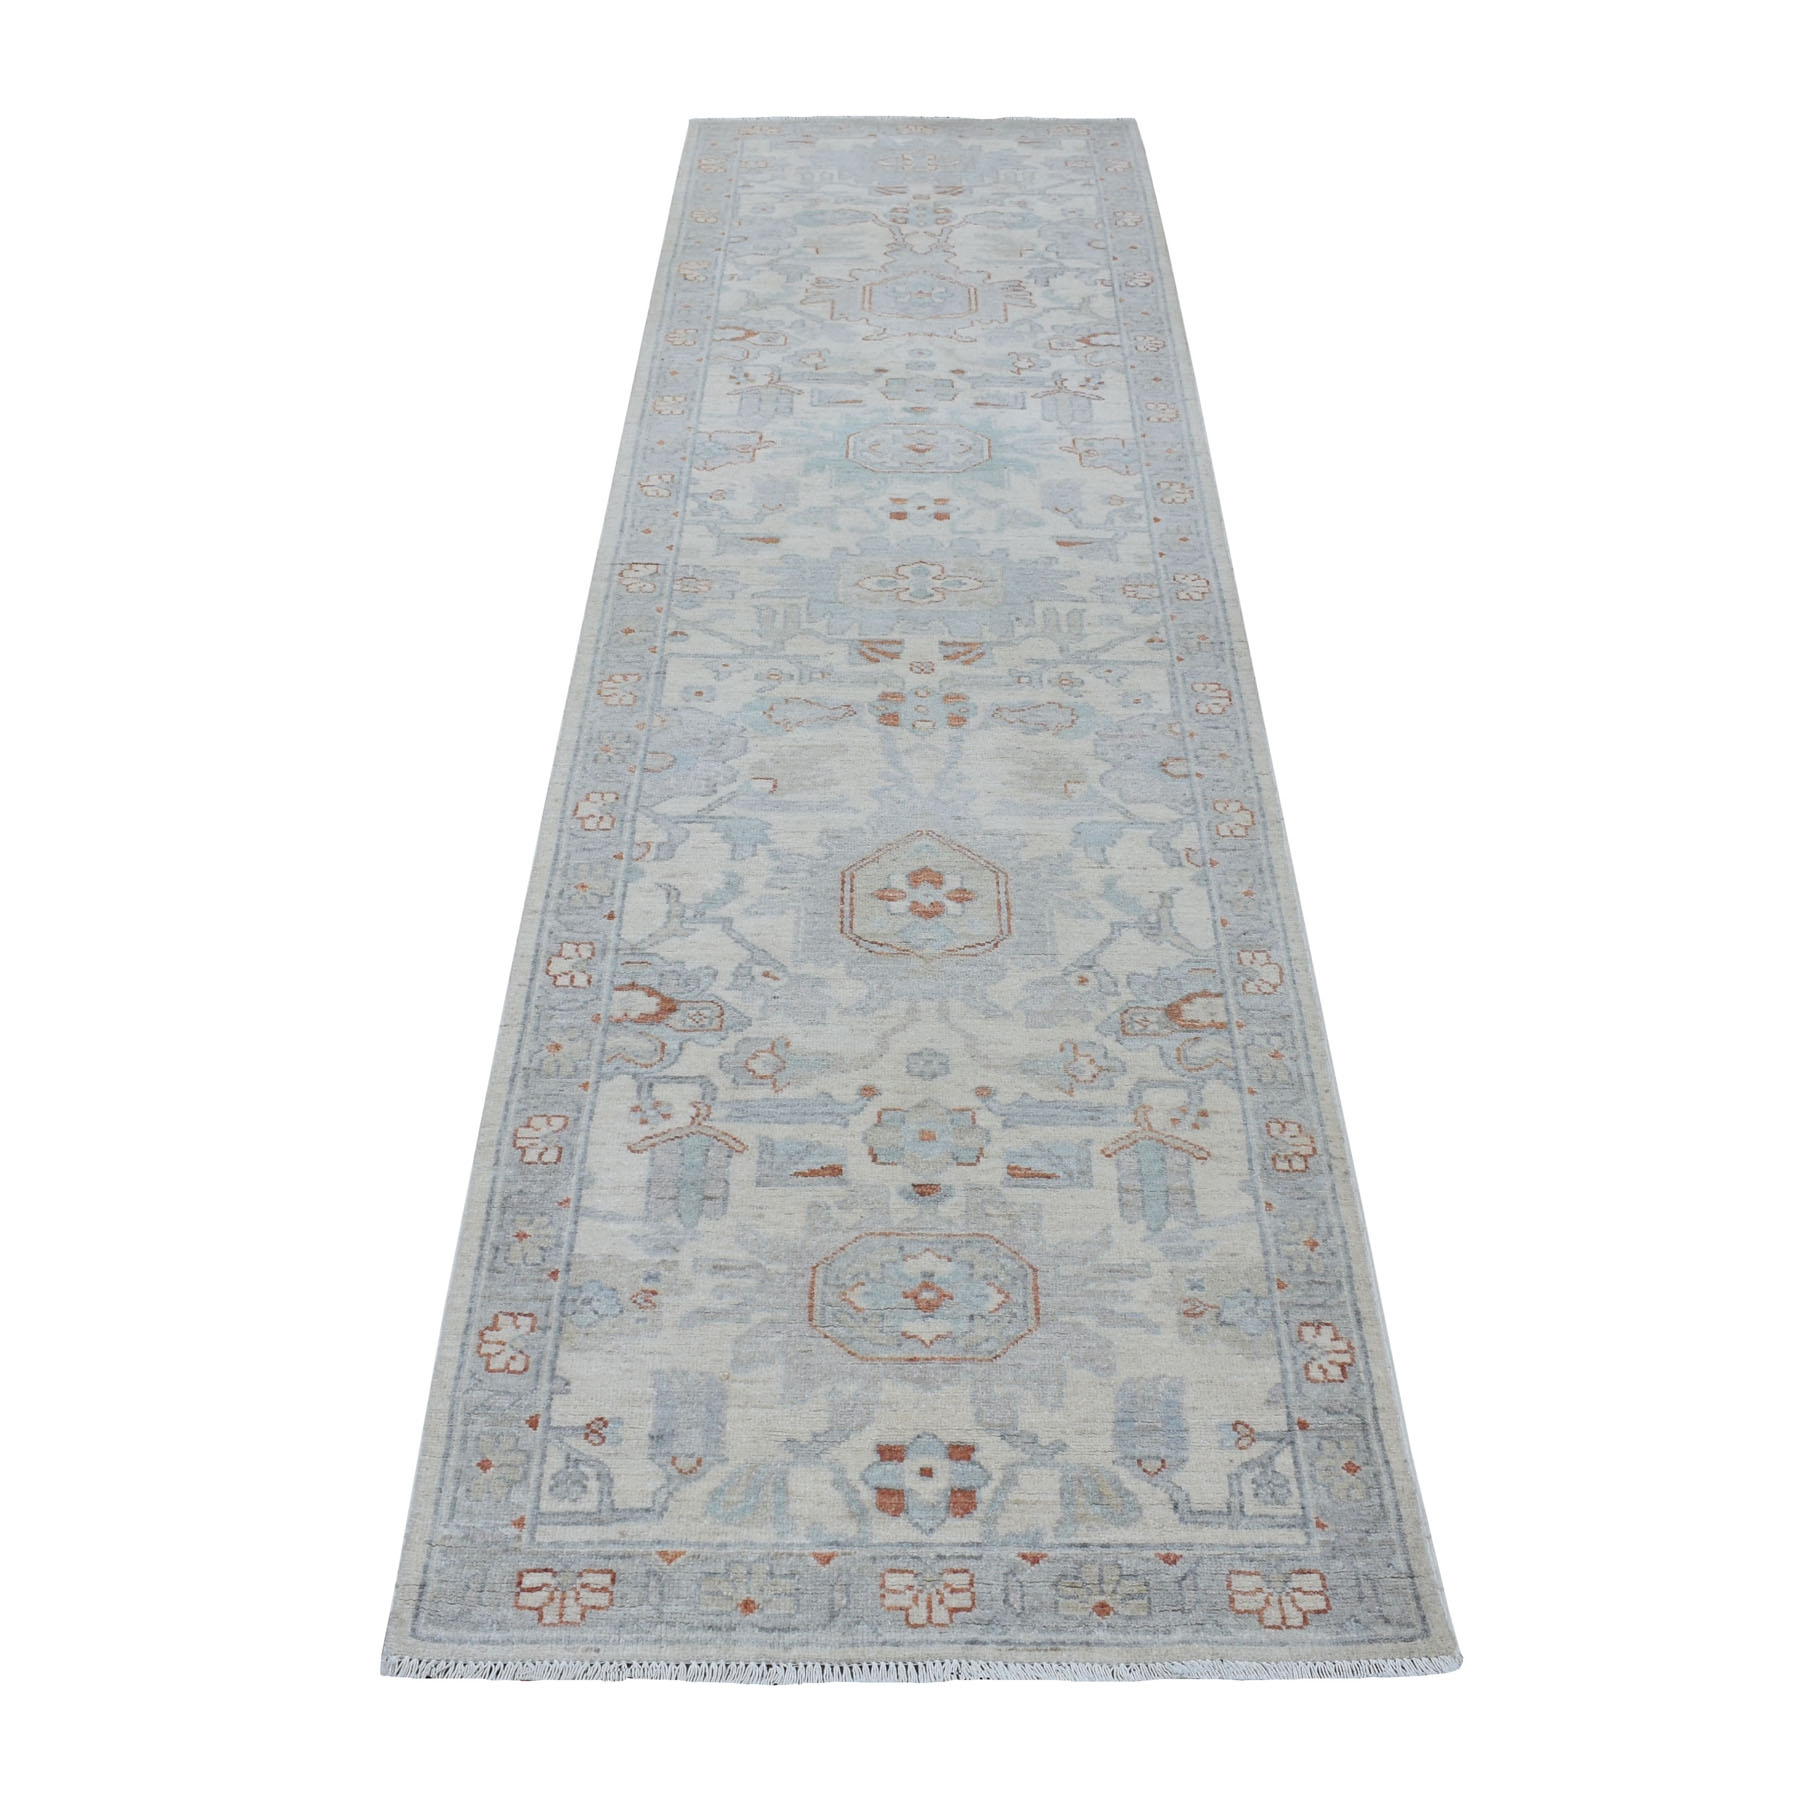 """2'8""""X9'9"""" White Wash Peshawar Pure Wool Hand Knotted Runner Orientals Rug moaec9a9"""